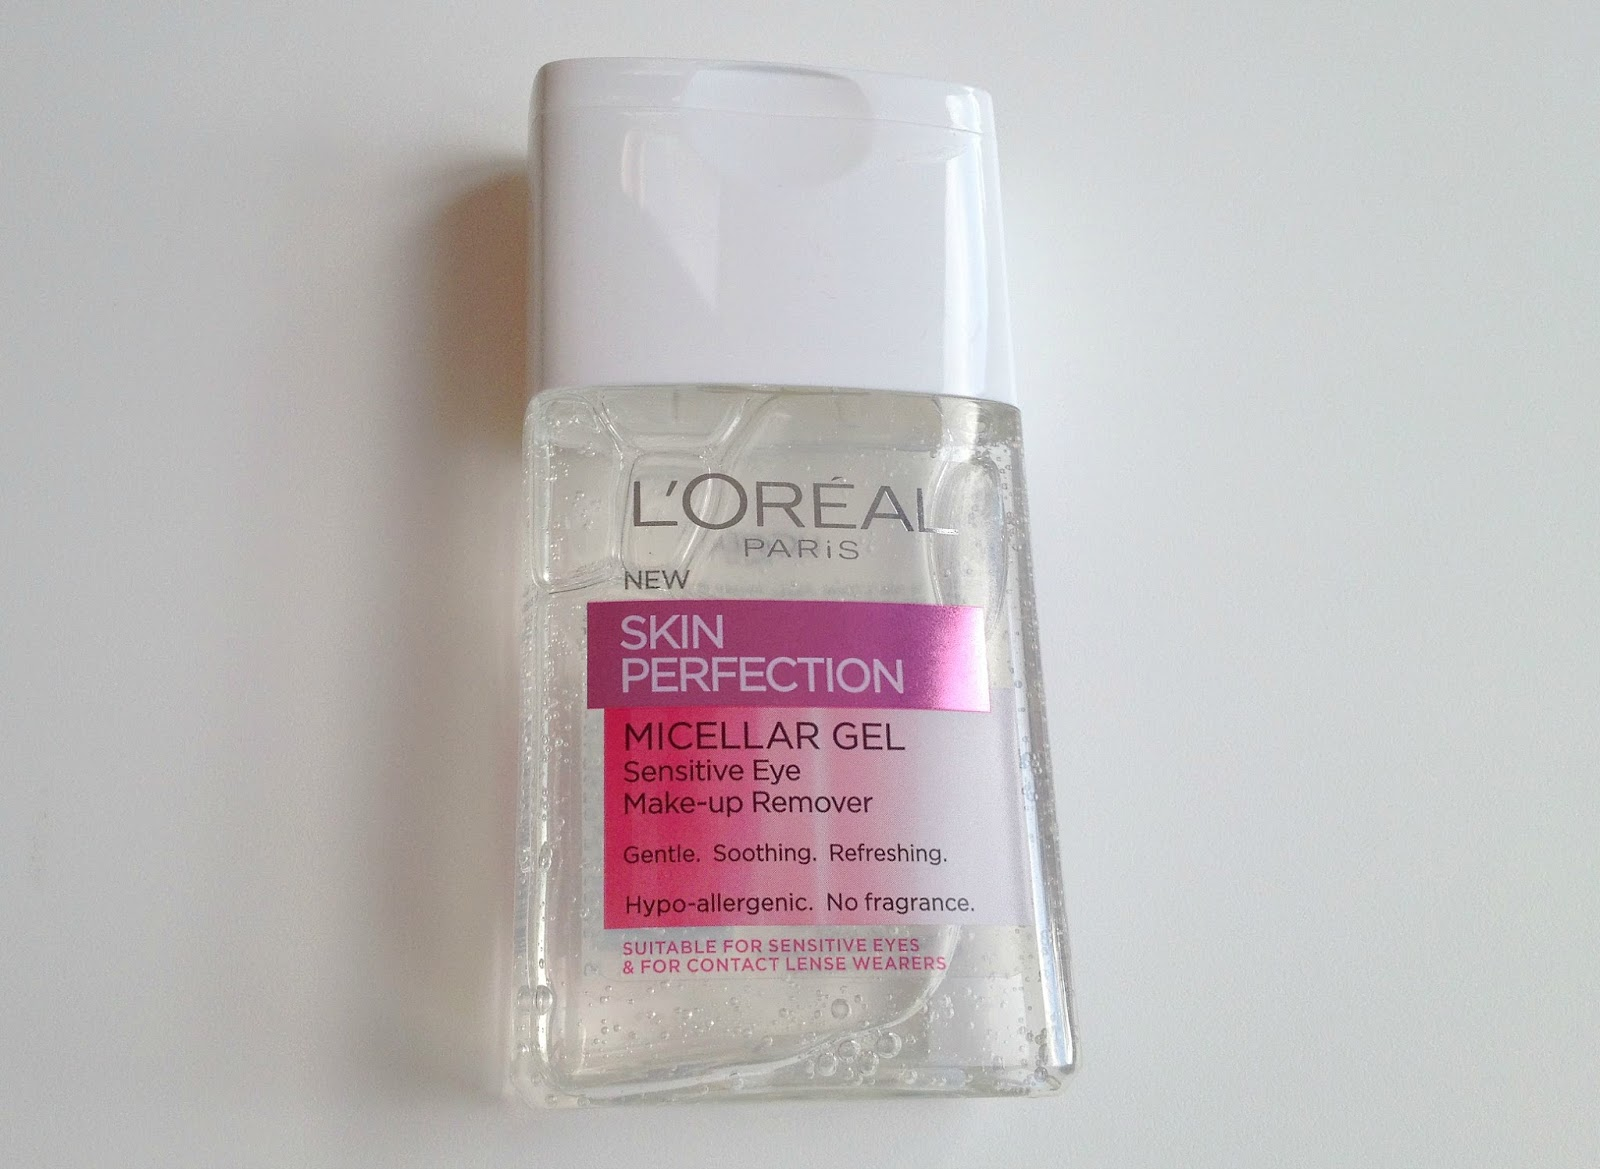 L'Oreal Skin Perfection Micellar Gel sensitive eye make up remover